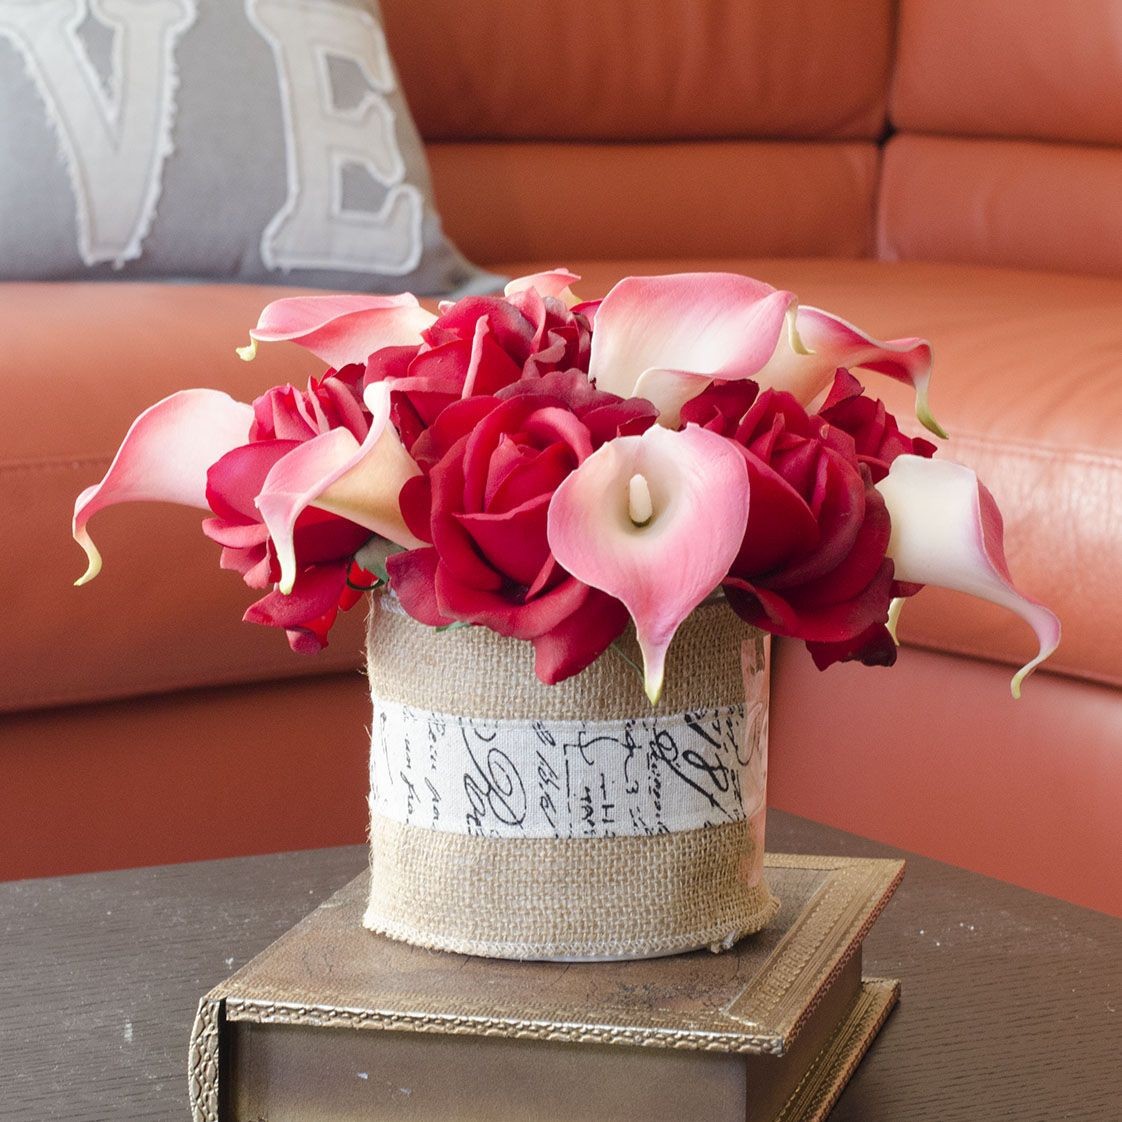 calla lily in vase photo of real touch red rose pink calla lily burlap vase 155 crafts inside real touch red rose pink calla lily burlap vase 155